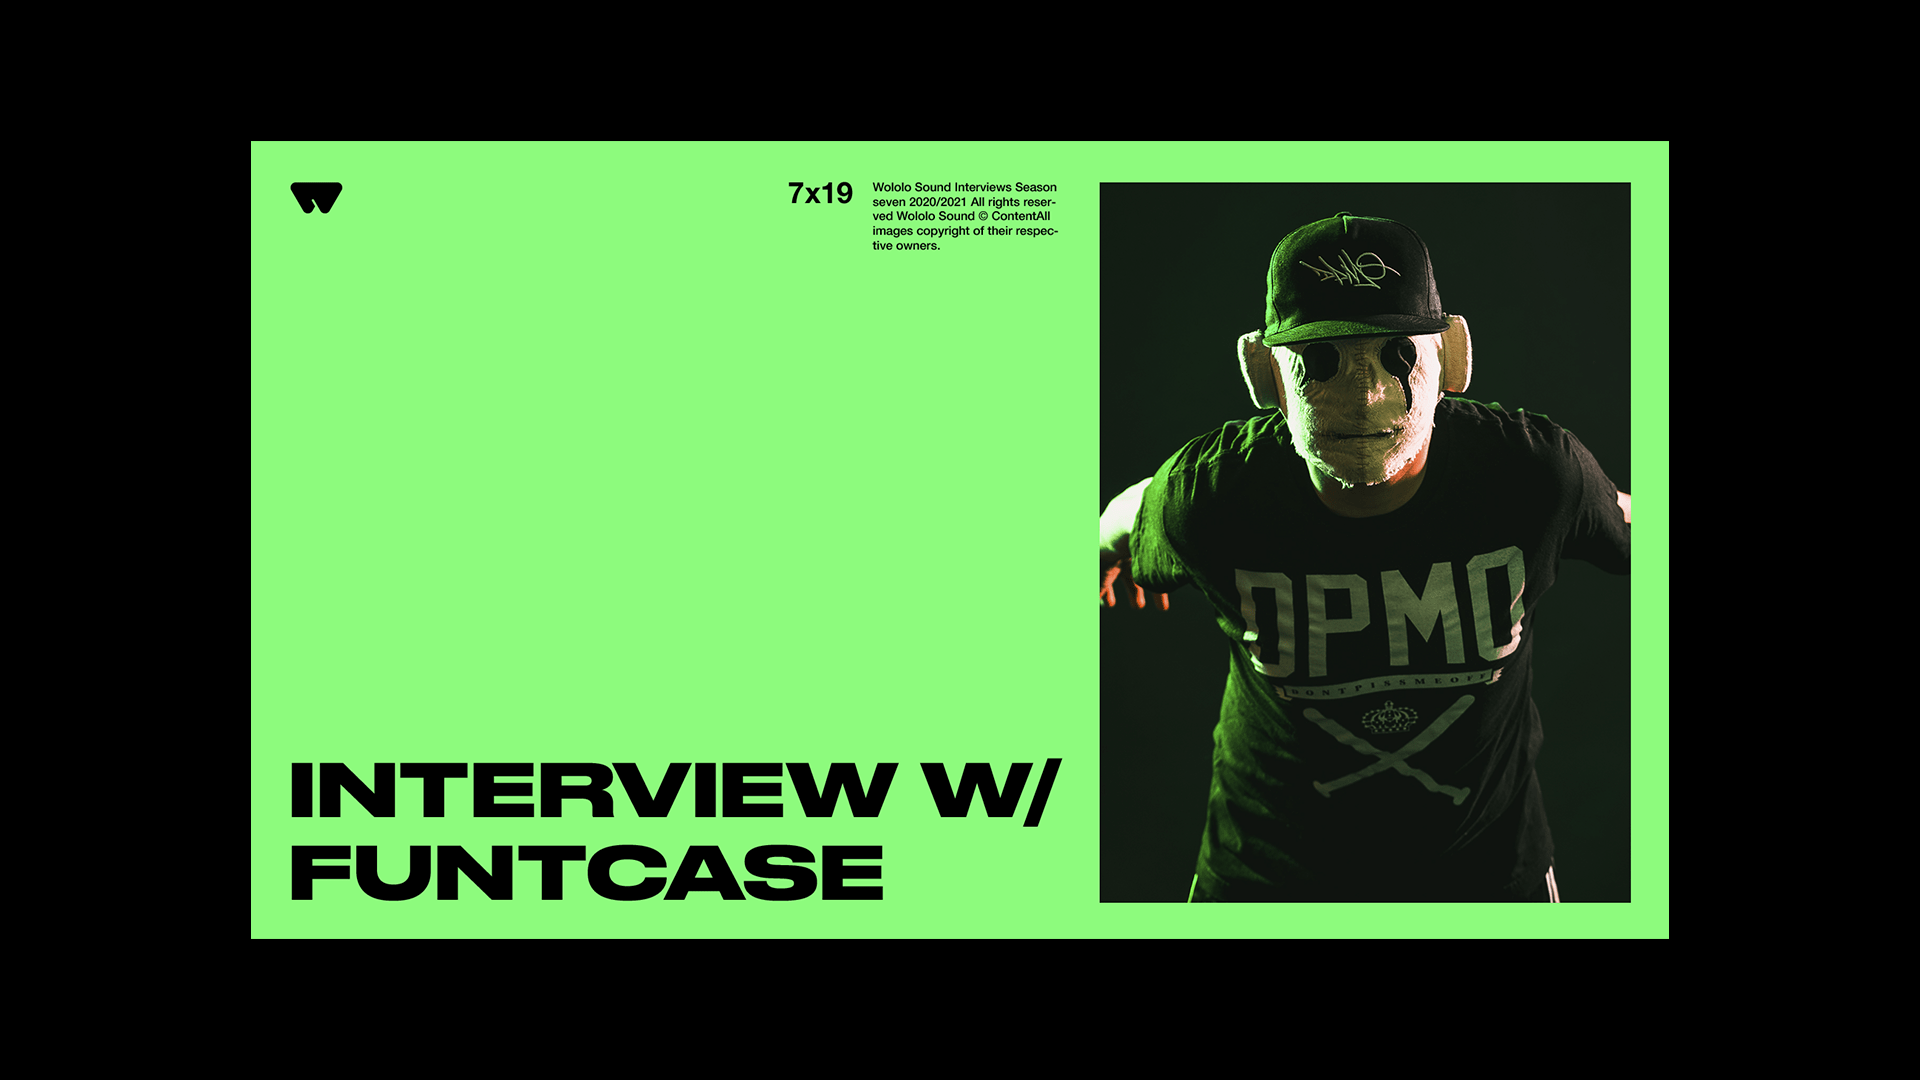 FUNTCASE INTERVIEW